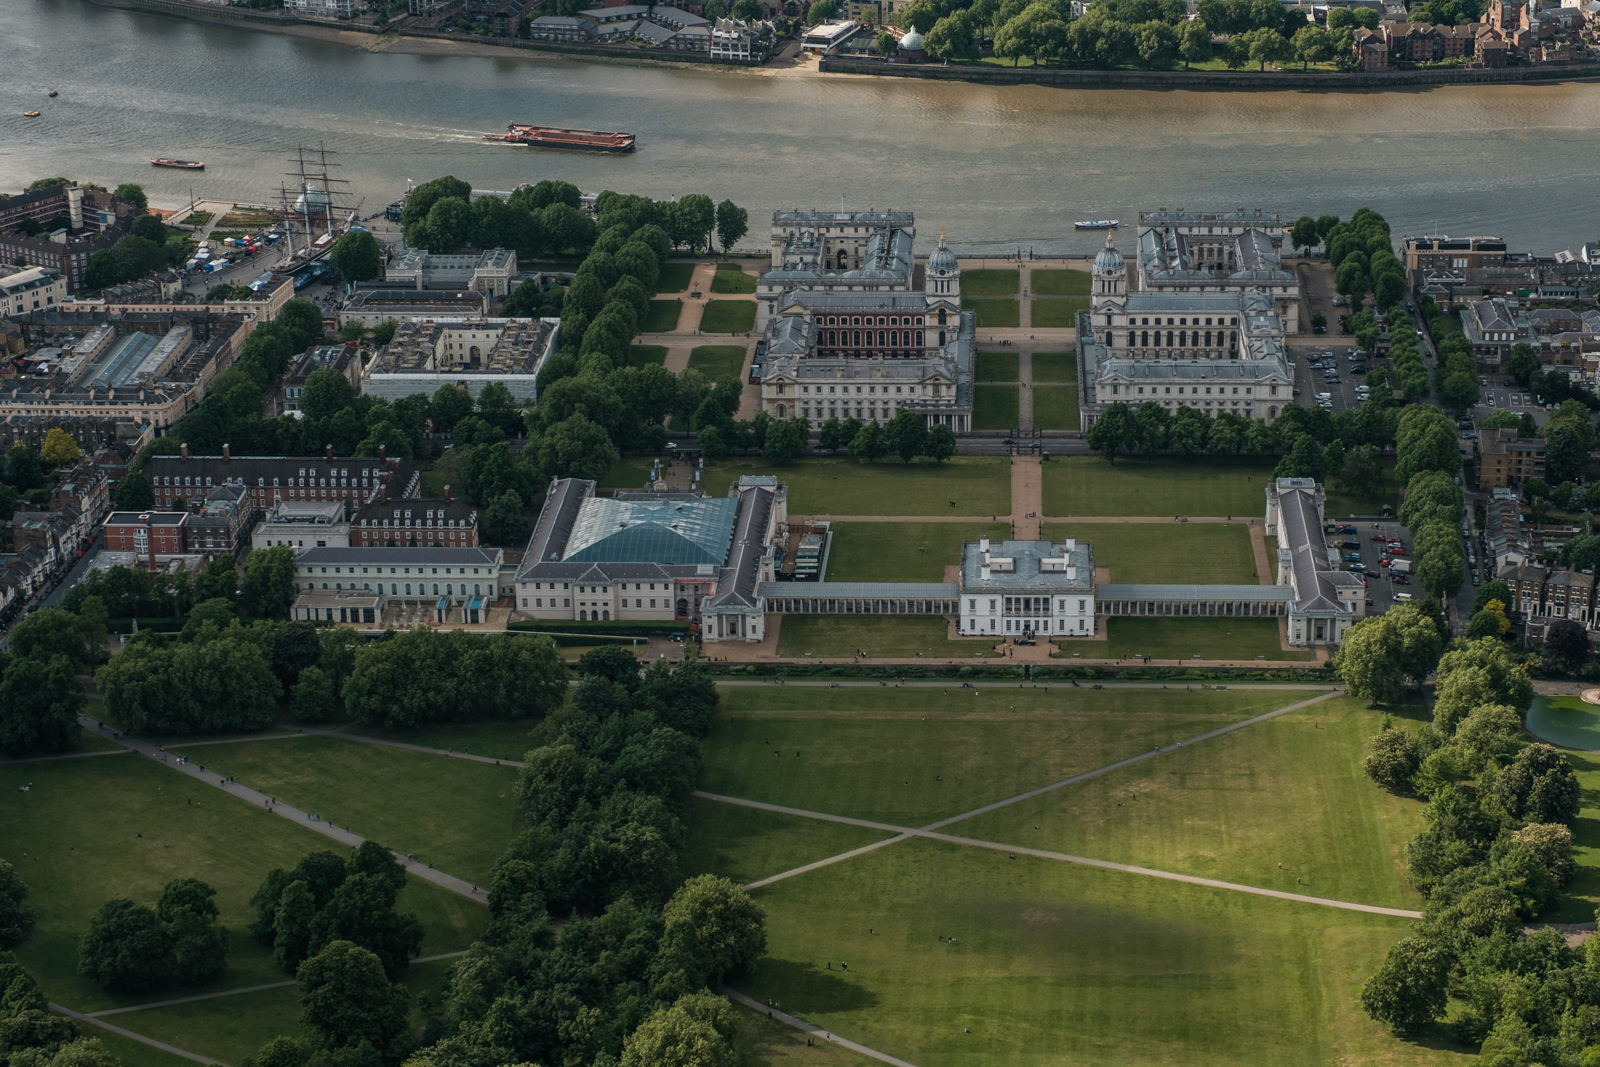 Old Royal Naval College, Greenvich- with 16-55mm f2.8 @42mm, f5.6, iso320, 1/1000s